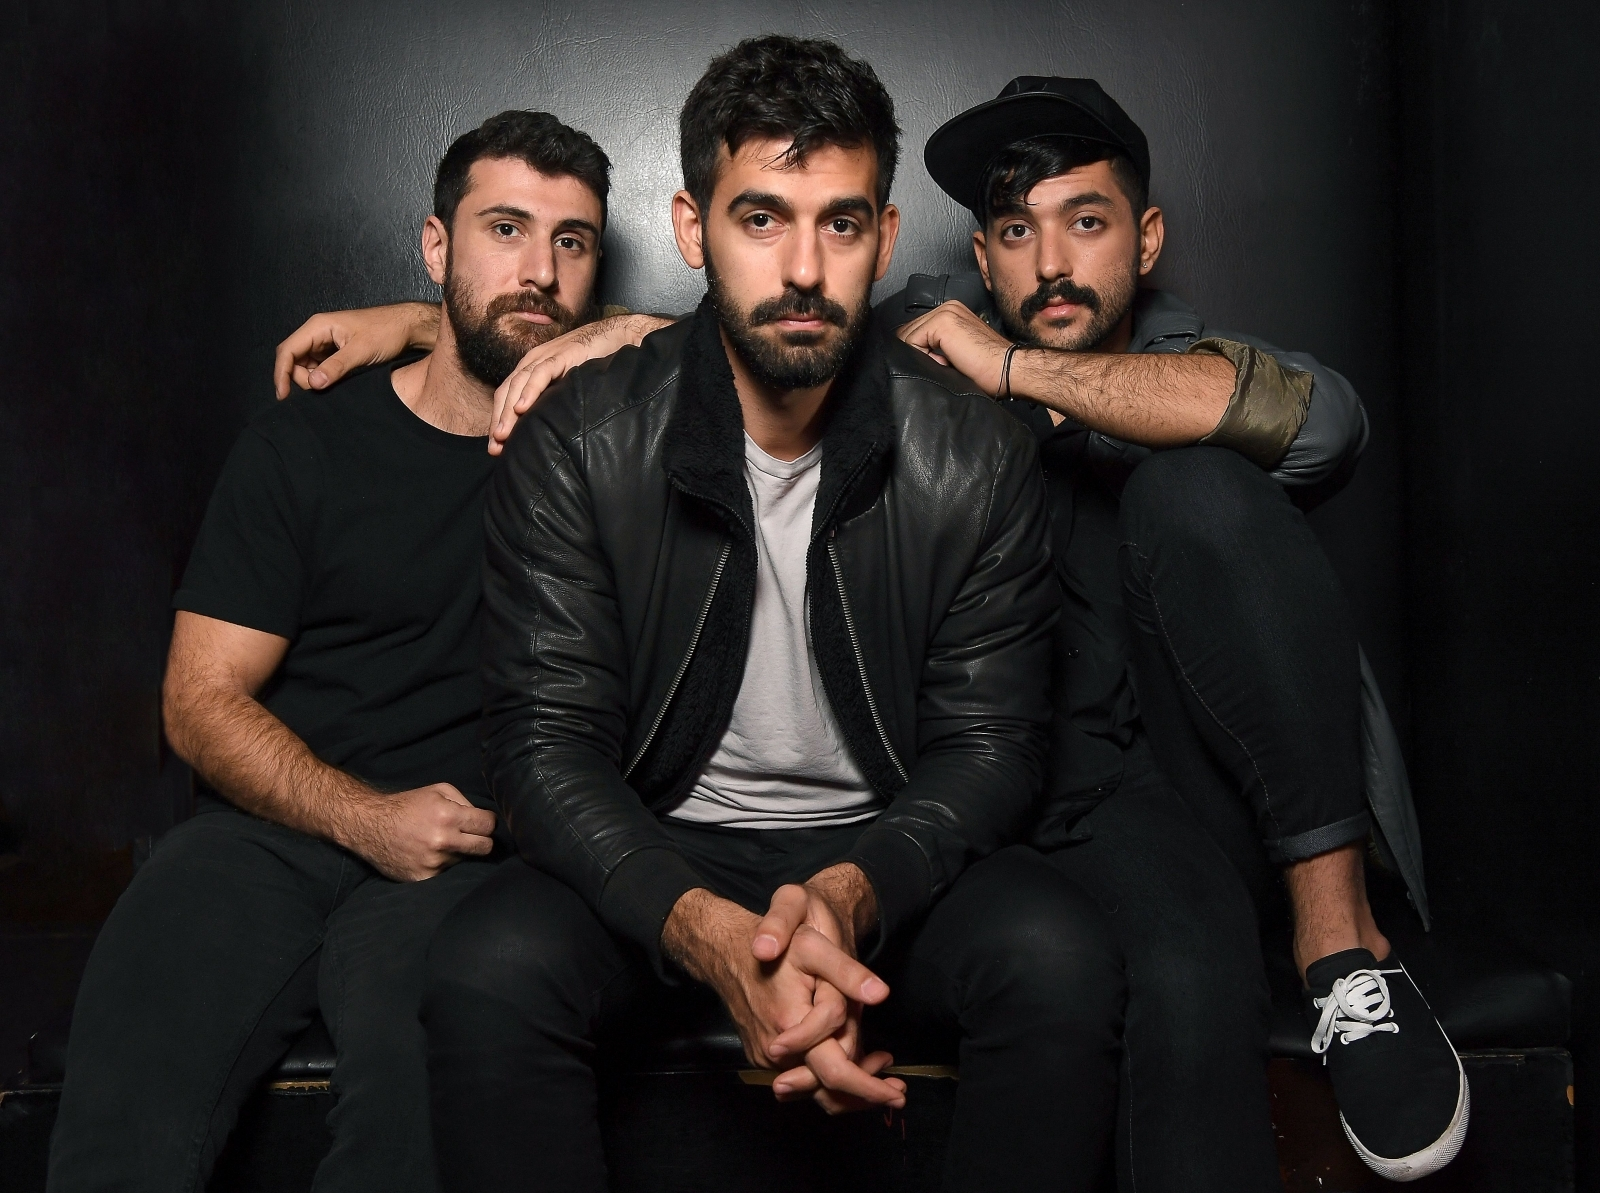 Lebanese band Mashrou' Leila